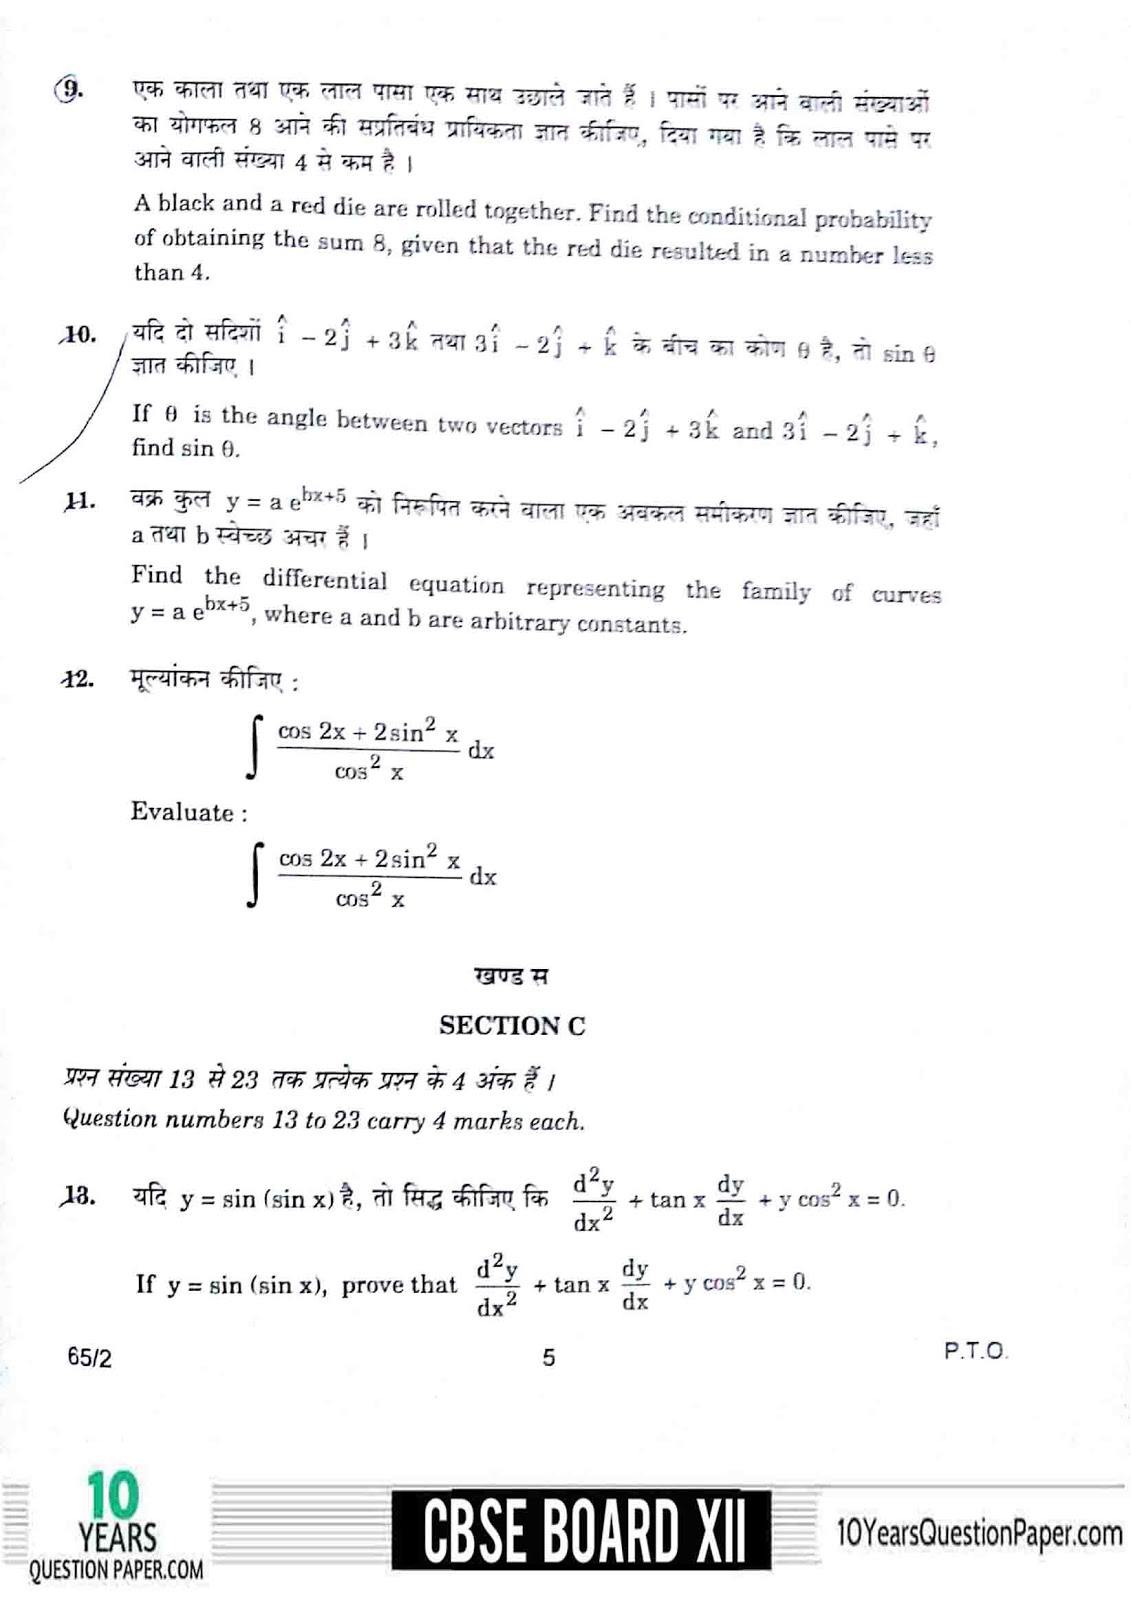 CBSE class 12 Maths 2018 question paper page-04